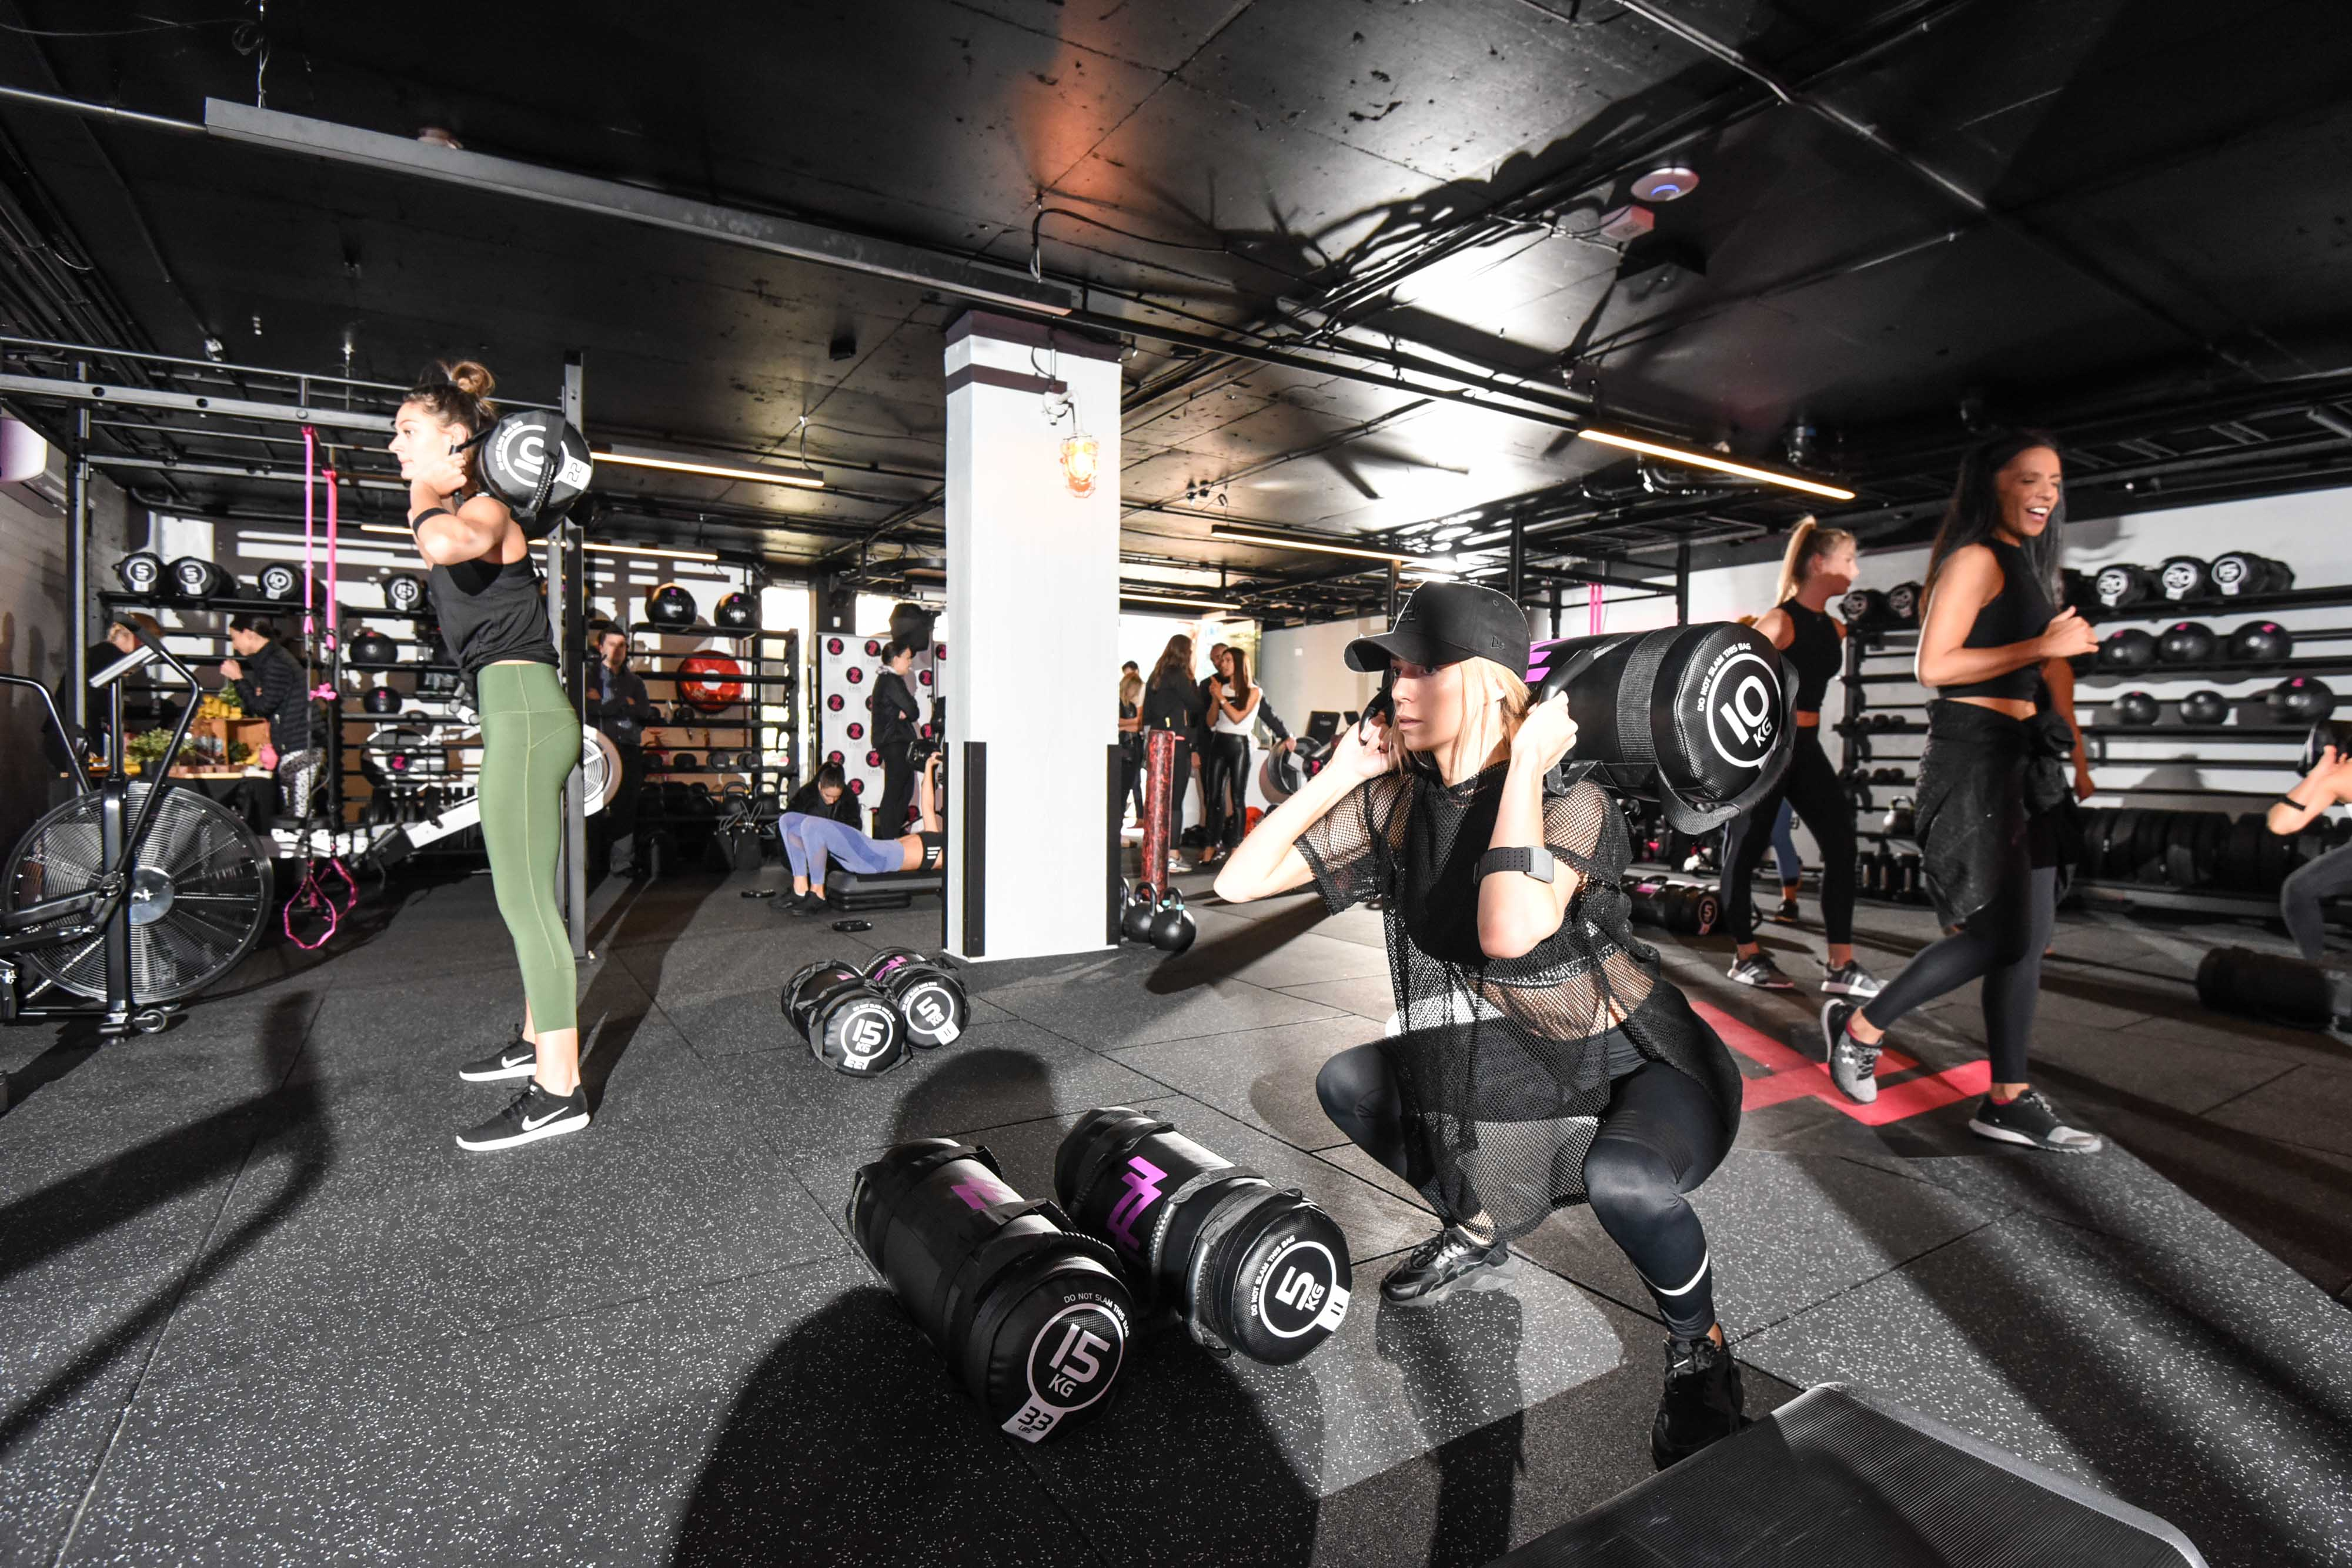 zadi-the-game-changer-in-female-fitness-studios-for-millenial-women-not-a-gym-5